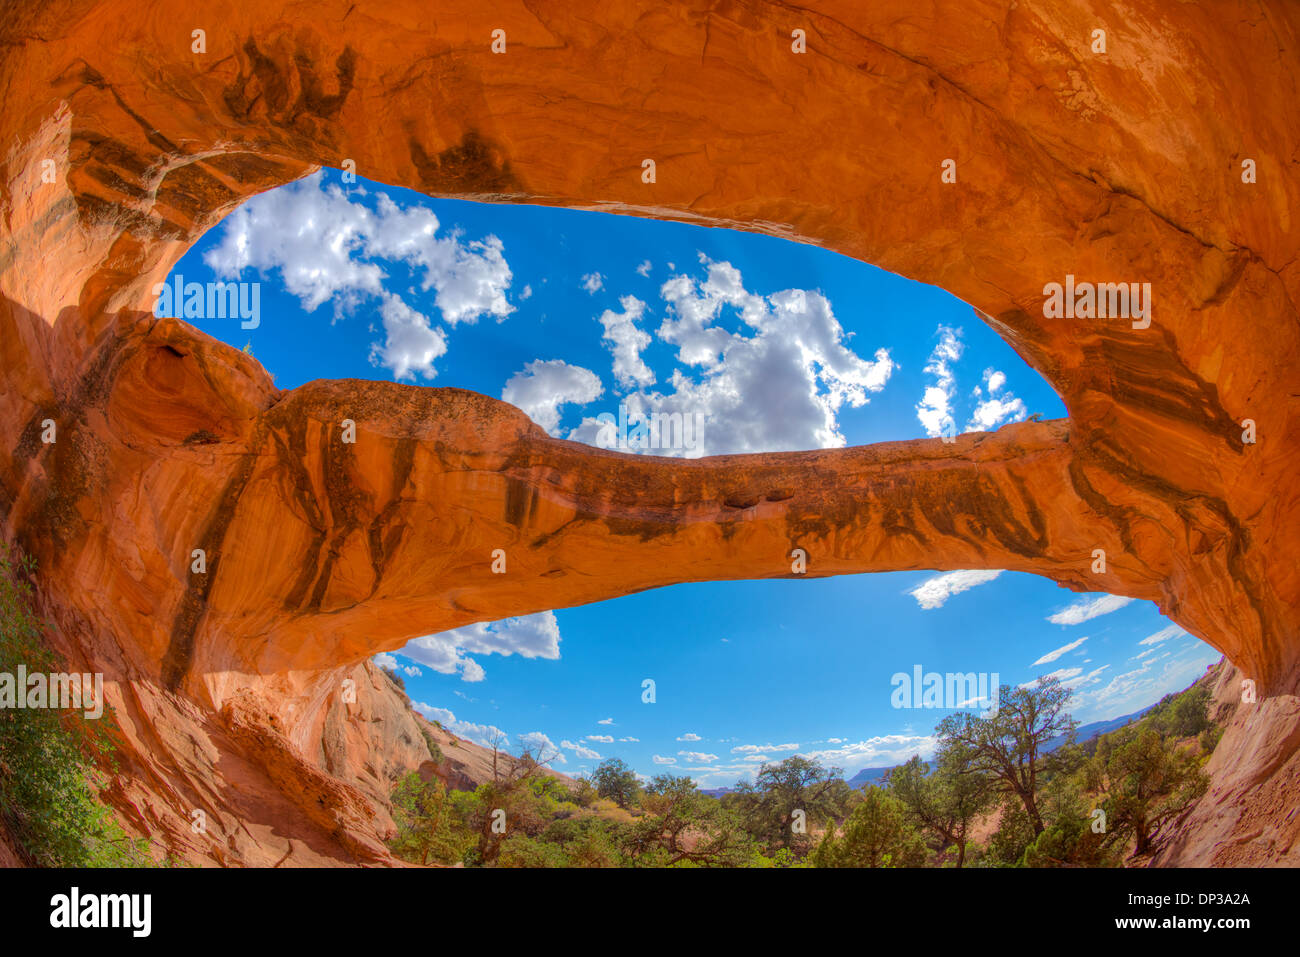 Uranium Arch, BLM lands near Moab, Utah, Natural sandstone arch - Stock Image